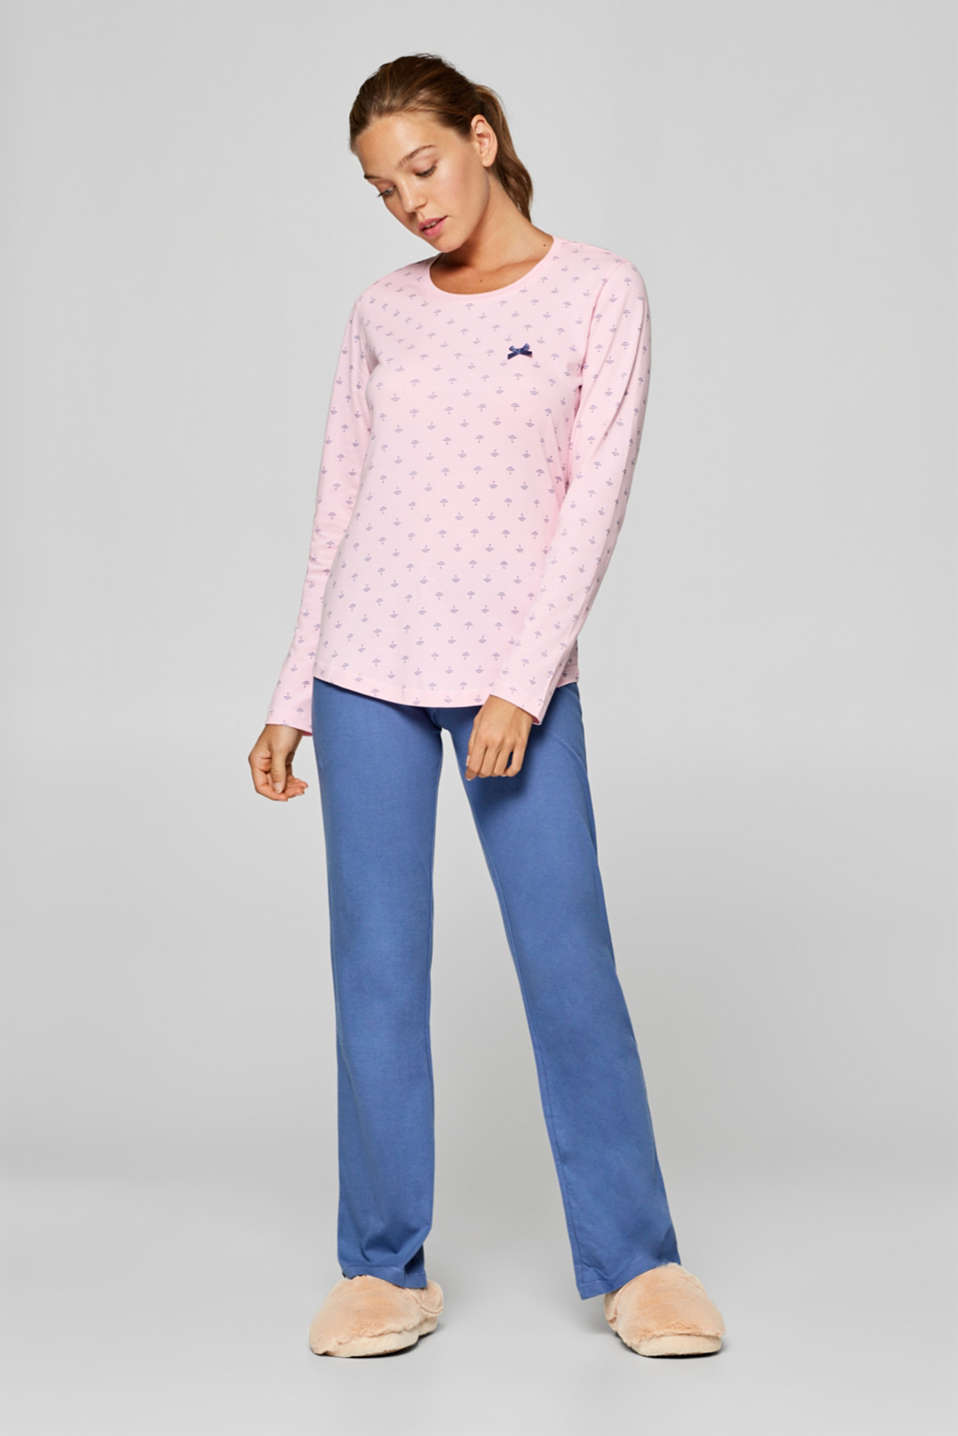 Esprit - Pyjamas with an umbrella print, 100% cotton